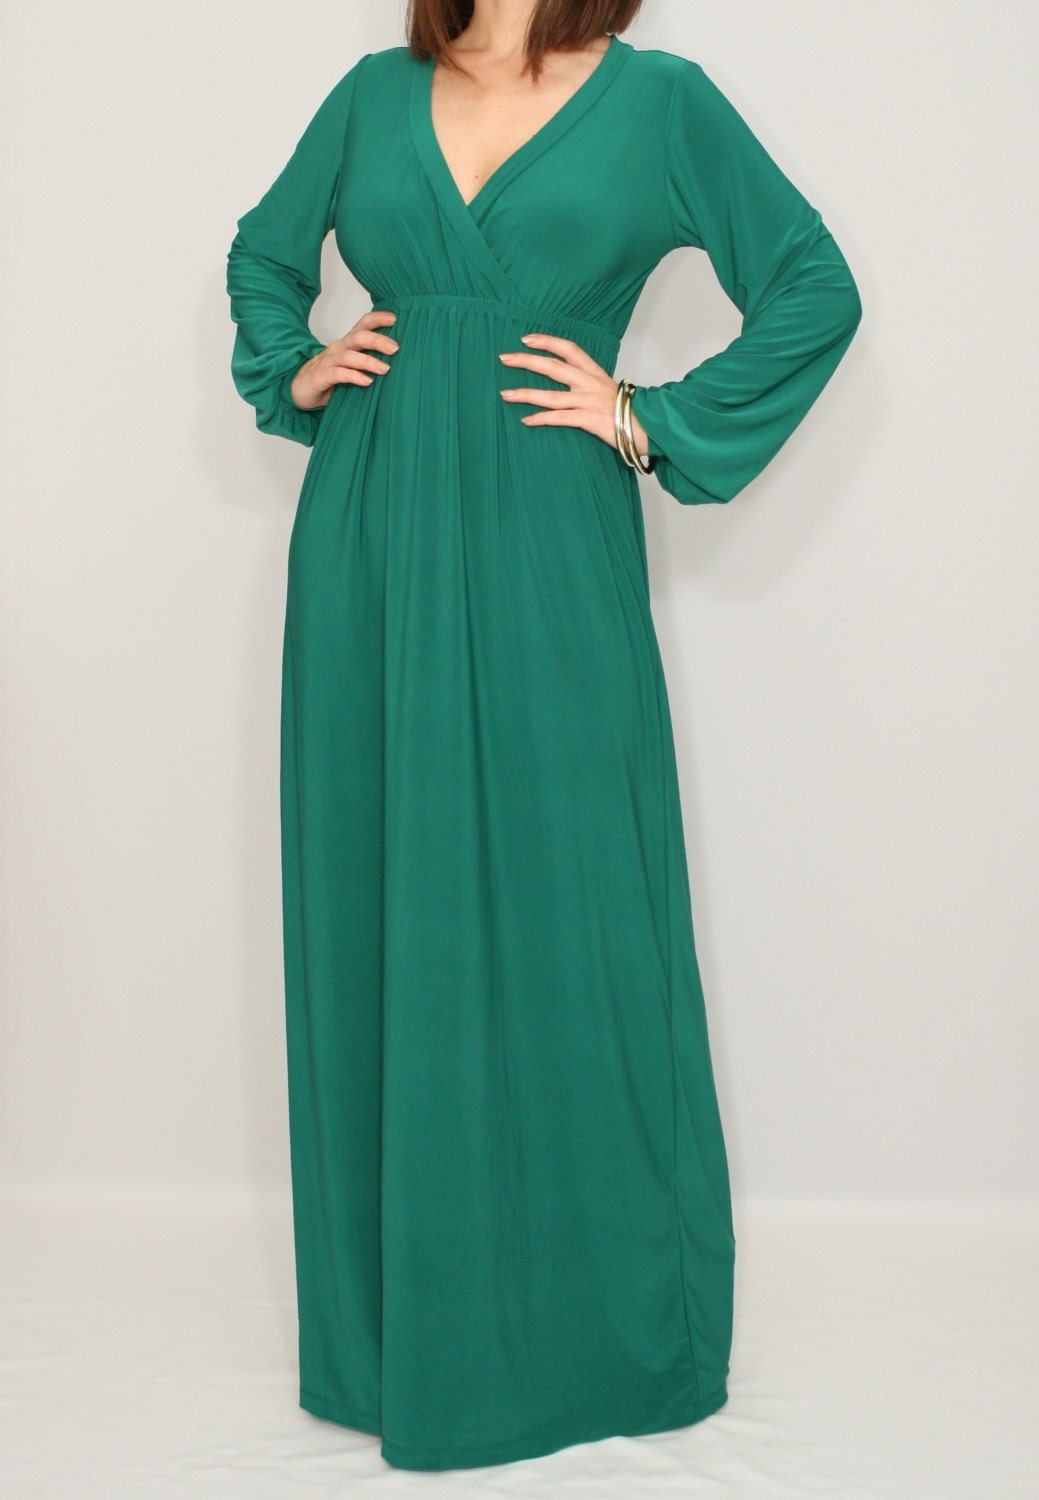 Emerald Green Dress Green Maxi Dress Long Sleeve Dress Women